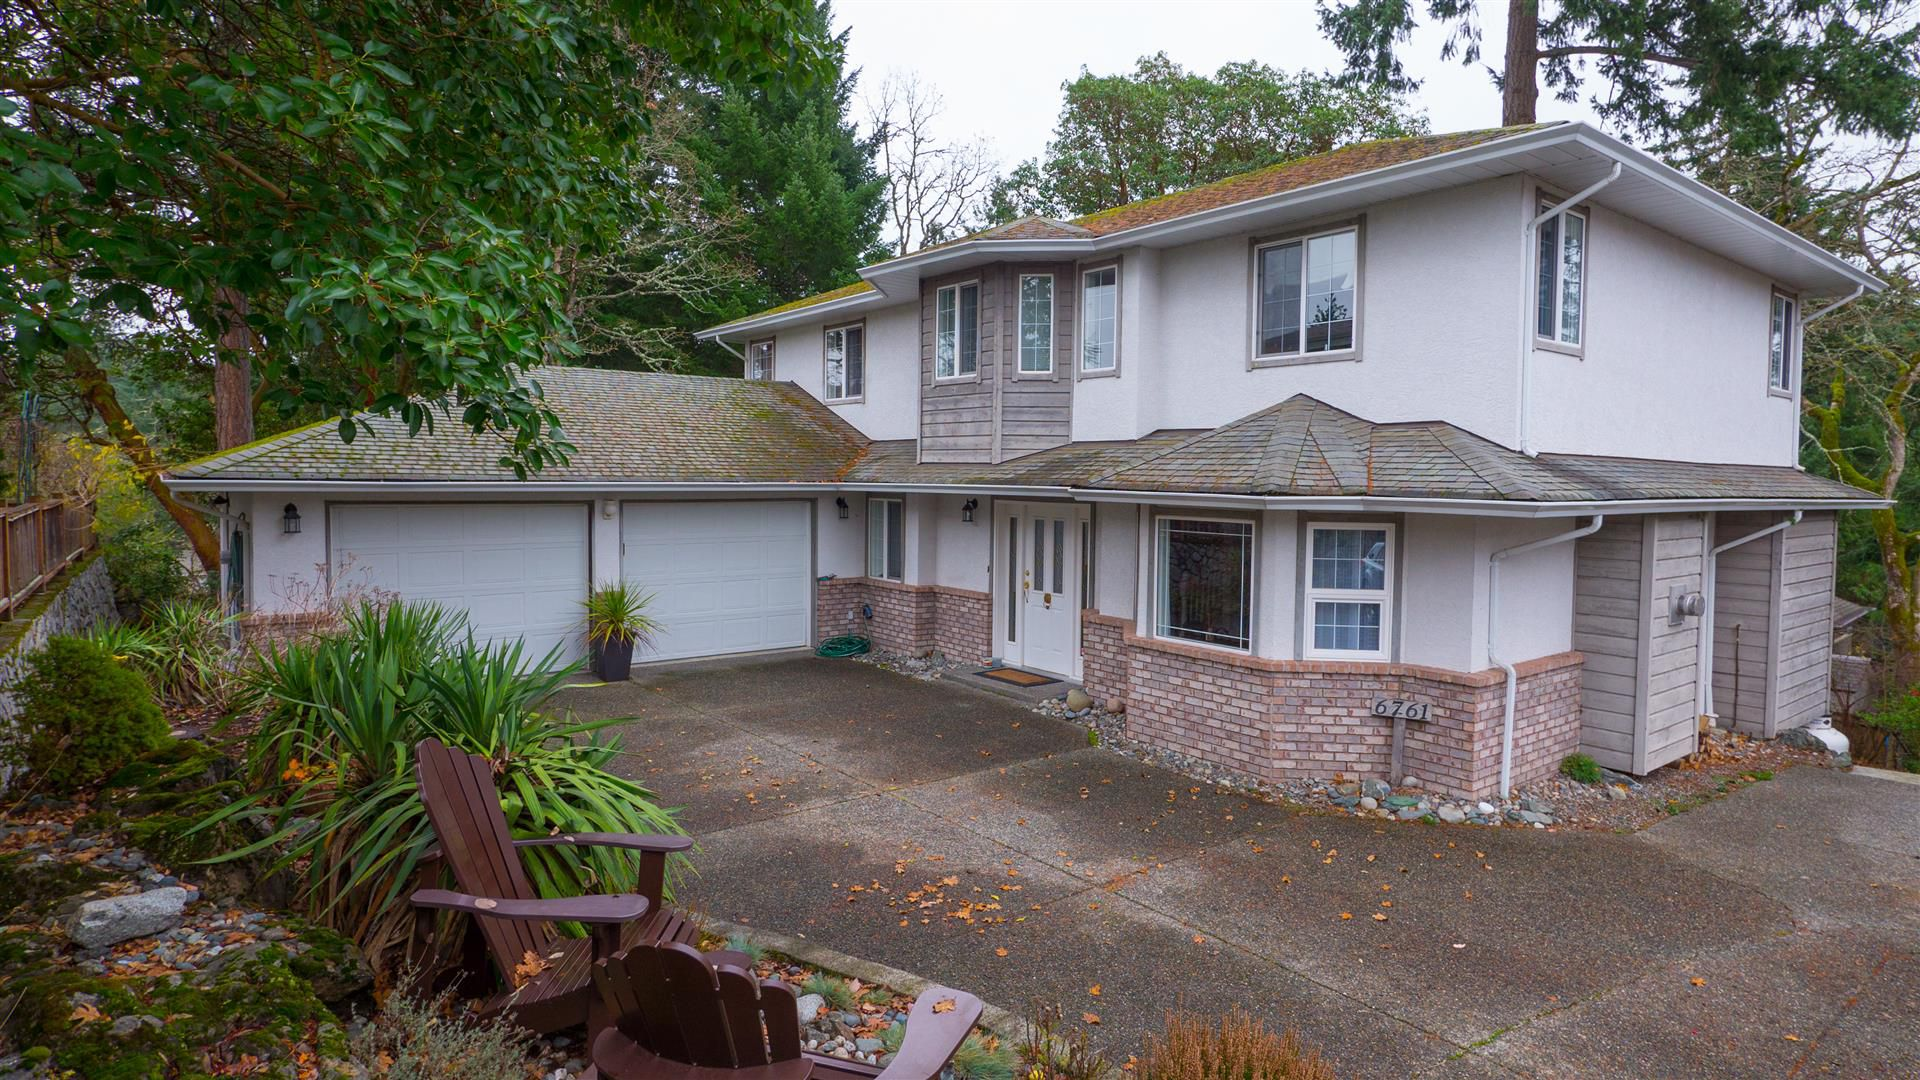 Main Photo:  in BRENTWOOD BAY: CS Brentwood Bay Single Family Detached for sale (Central Saanich)  : MLS®# 385870